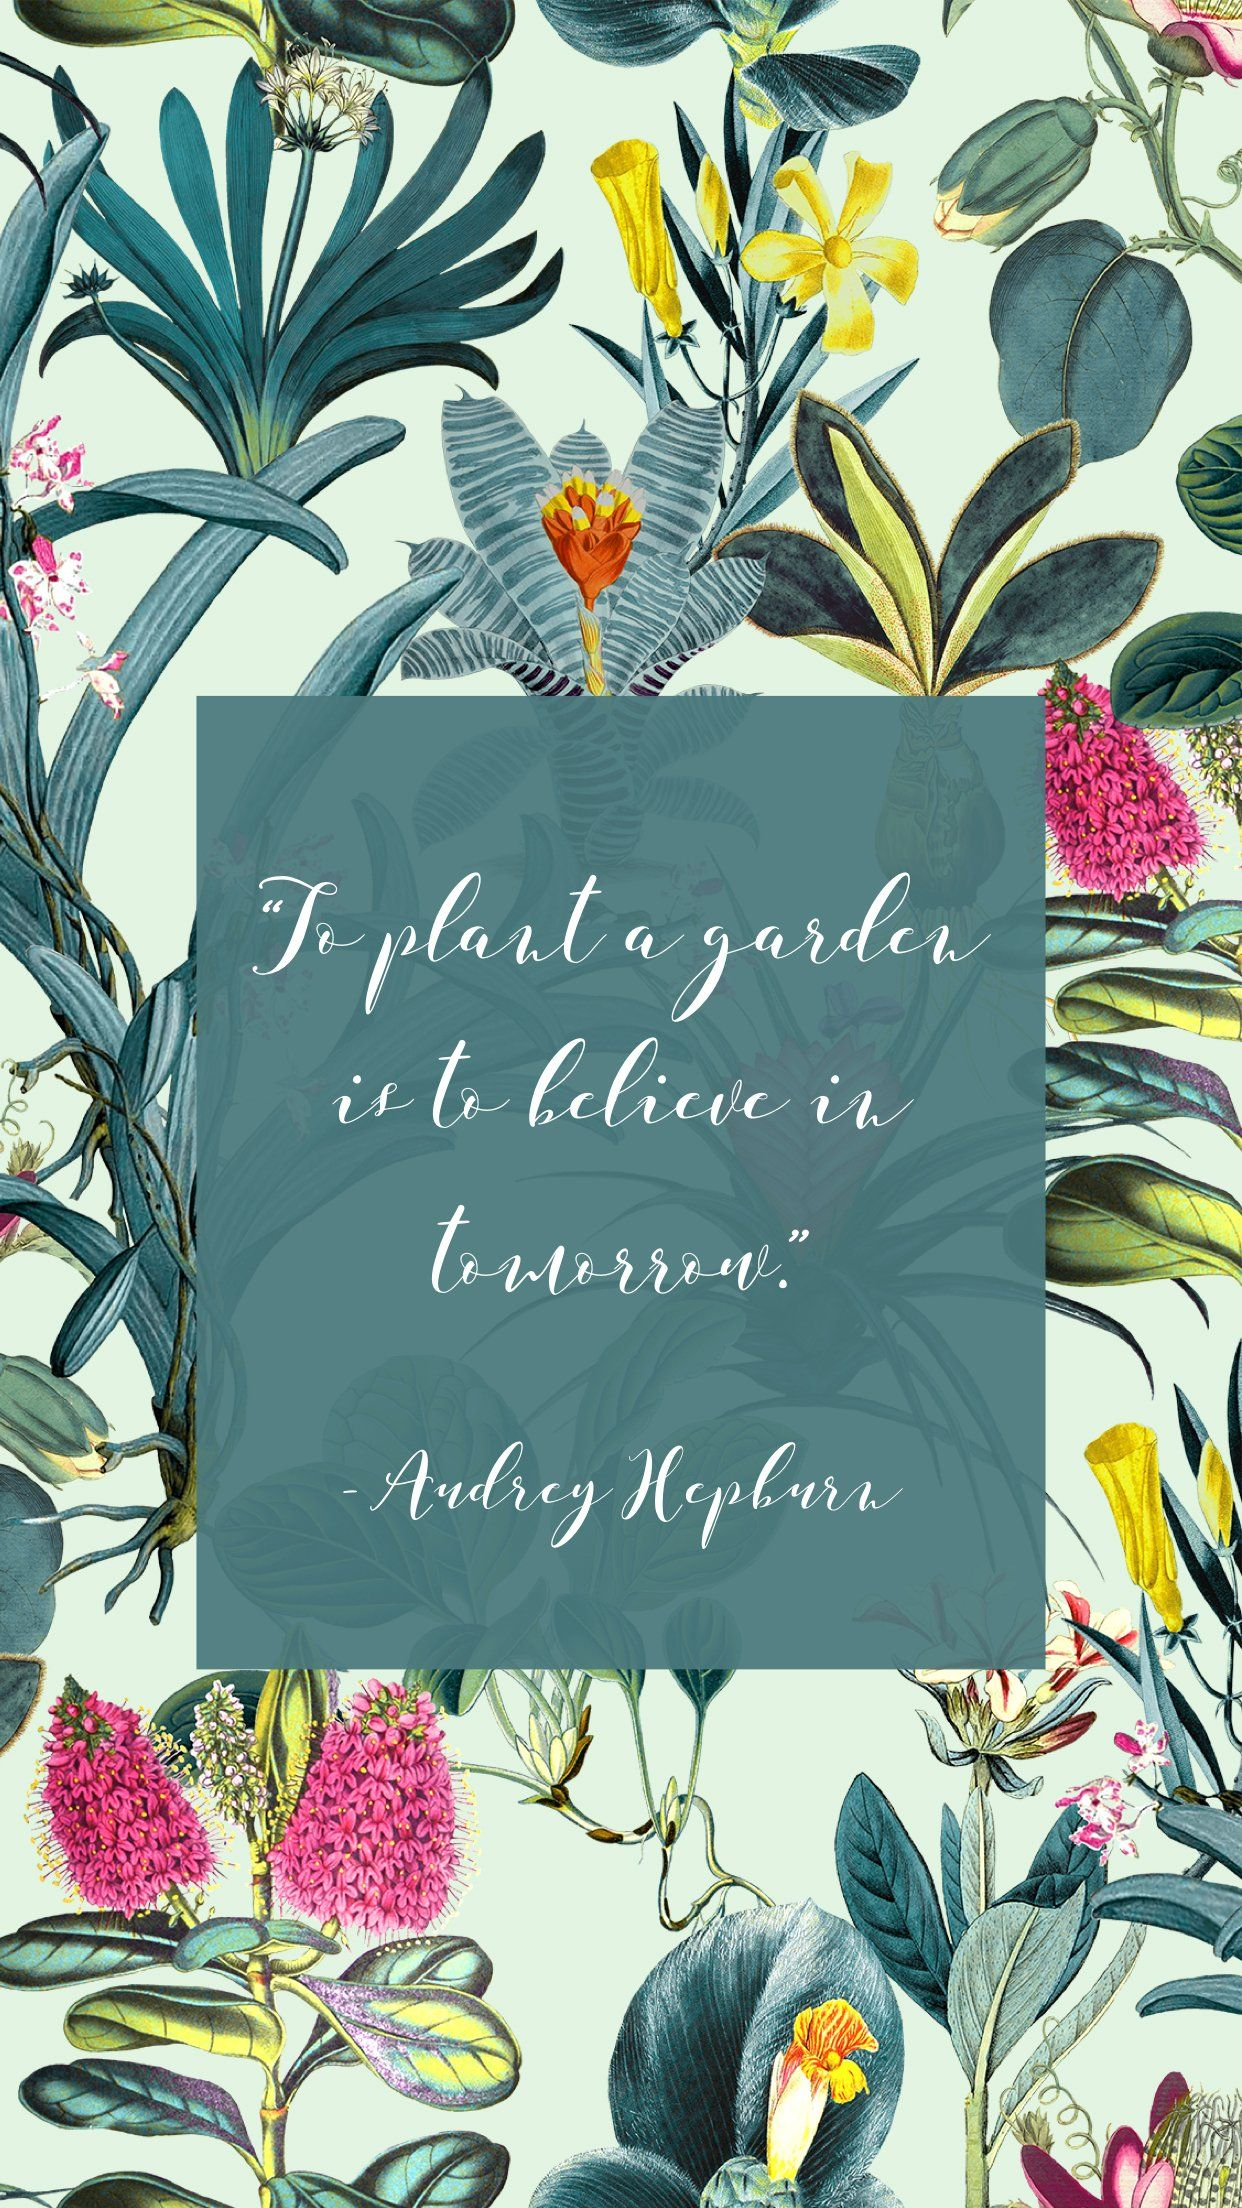 Audrey Hepburn Arvo Wallpaper Be Good Do Good Arvo Arvowear Arvowatch Audrey Hepburn Quotes Audrey Hepburn Wallpaper Backgrounds Phone Wallpapers